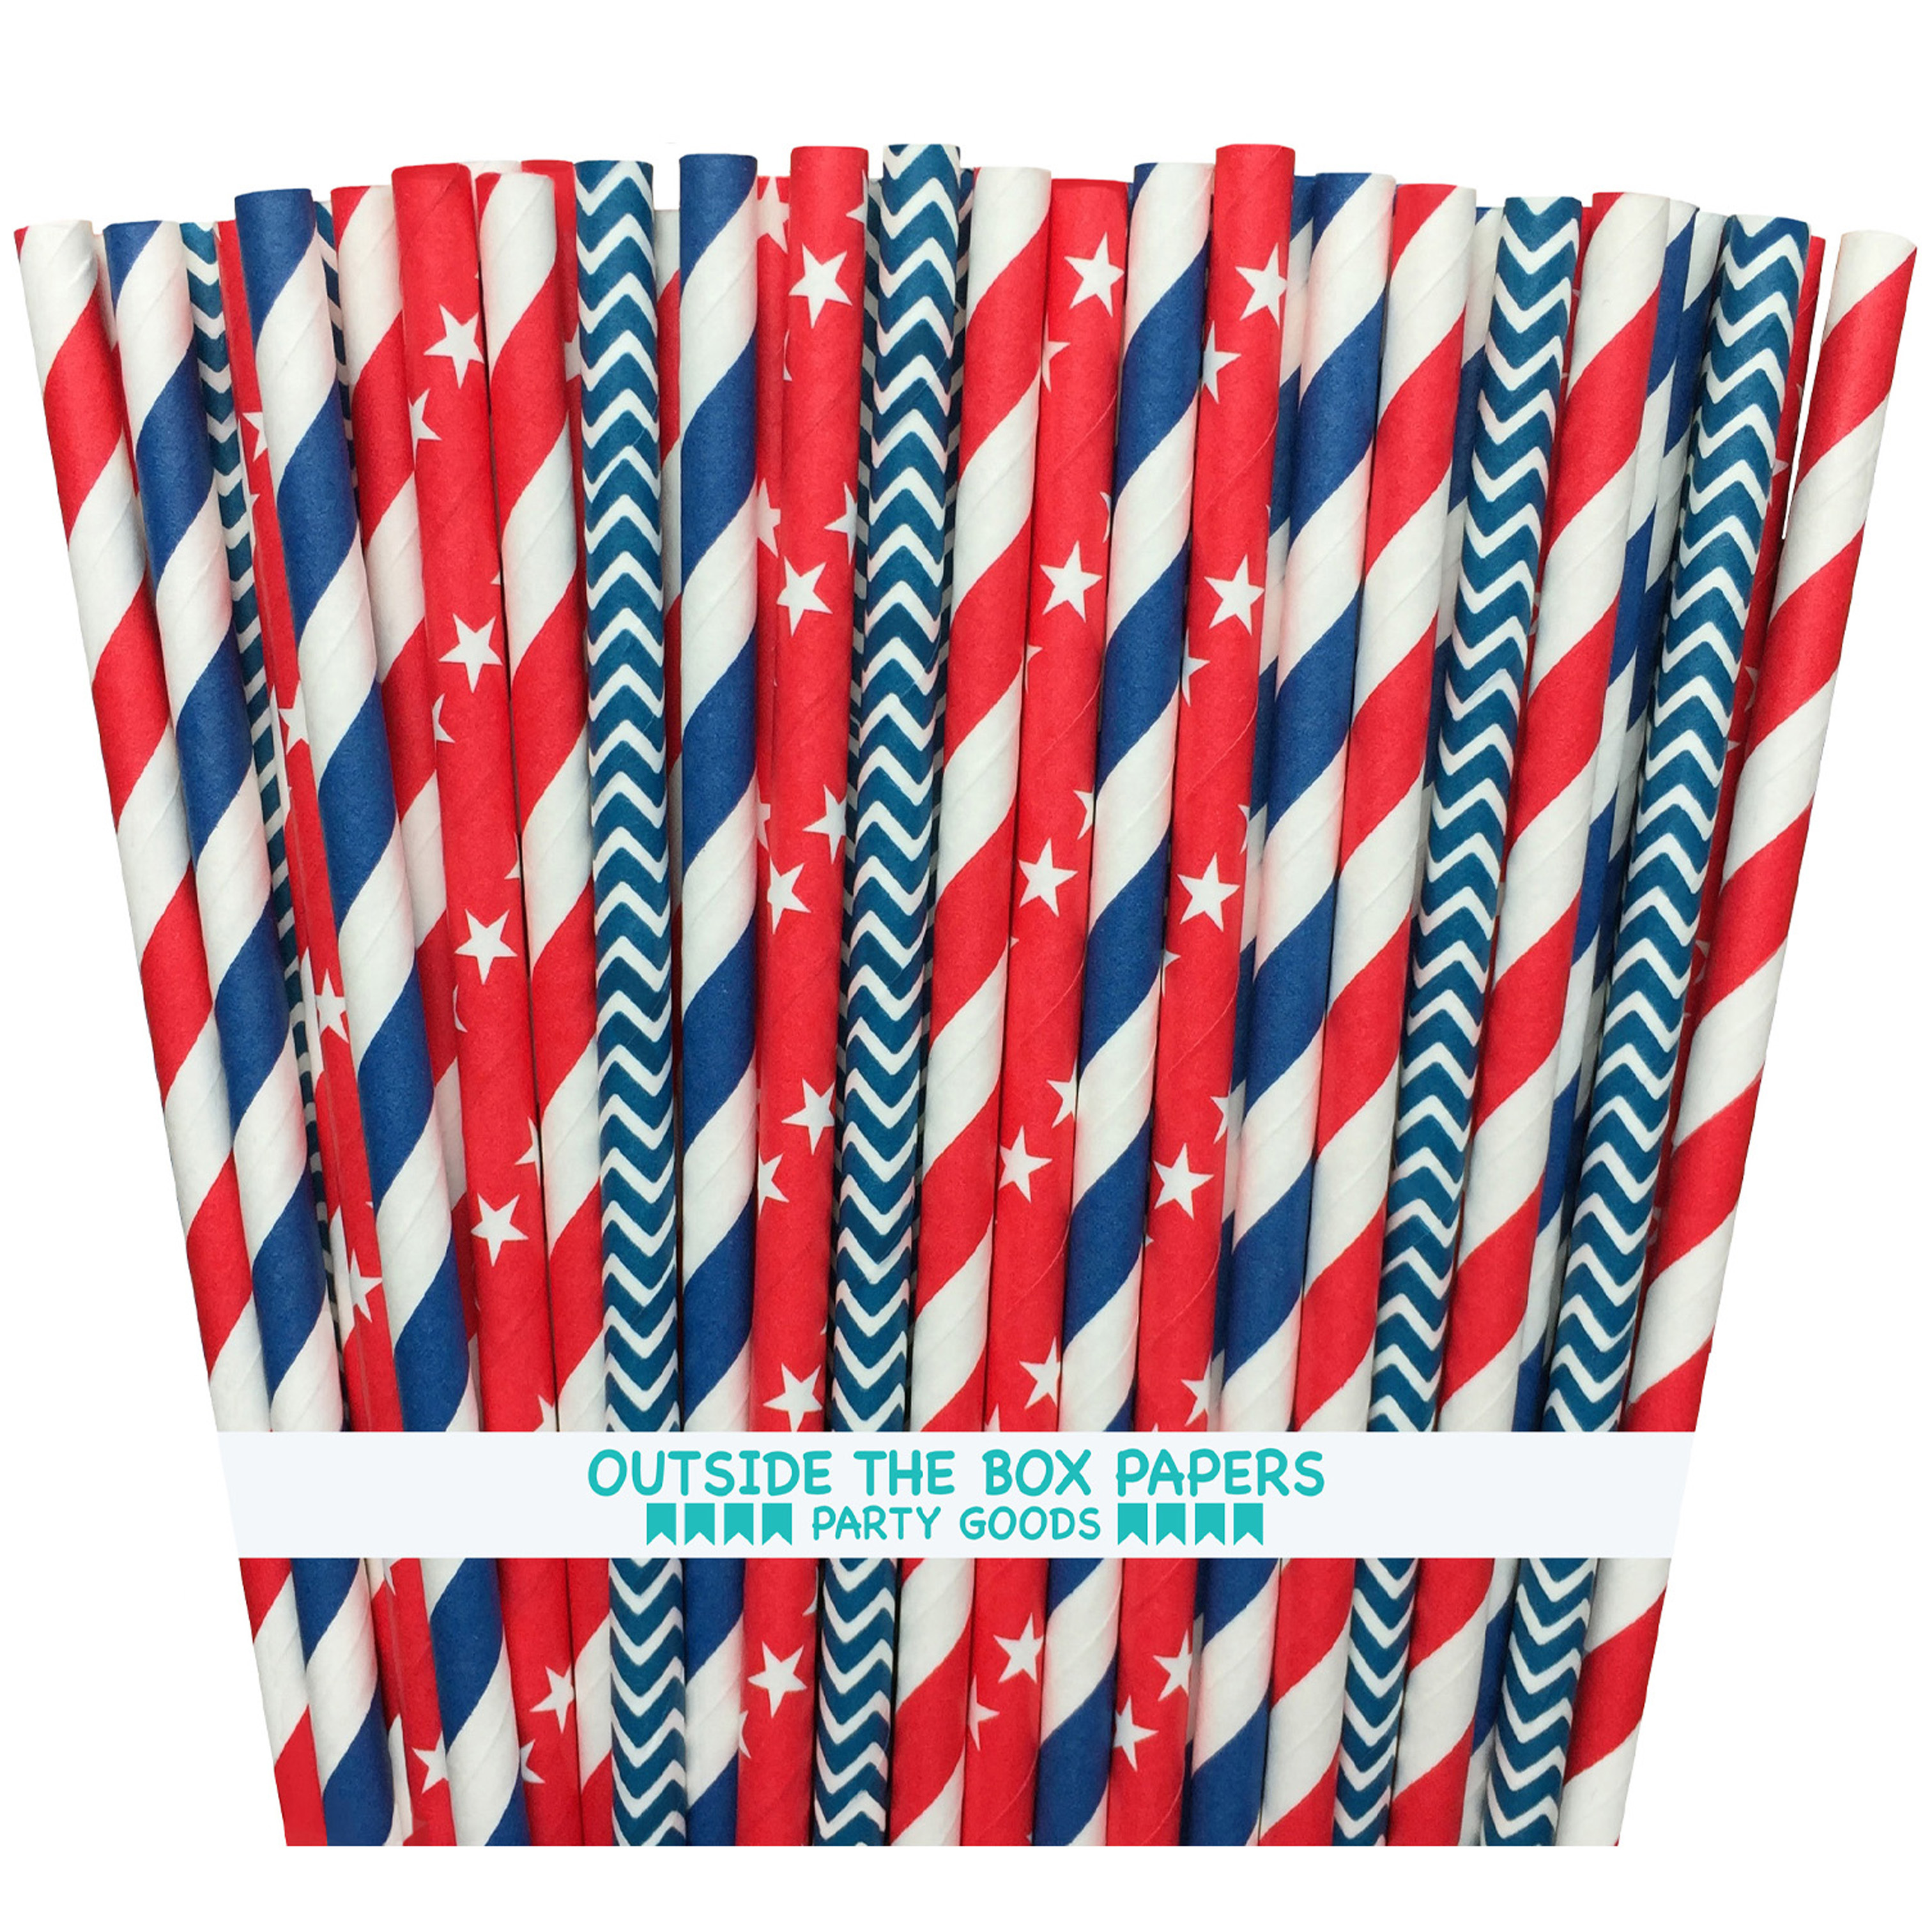 Red, White and Blue Stripe, Star, Chevron Paper Straw 100 Pack